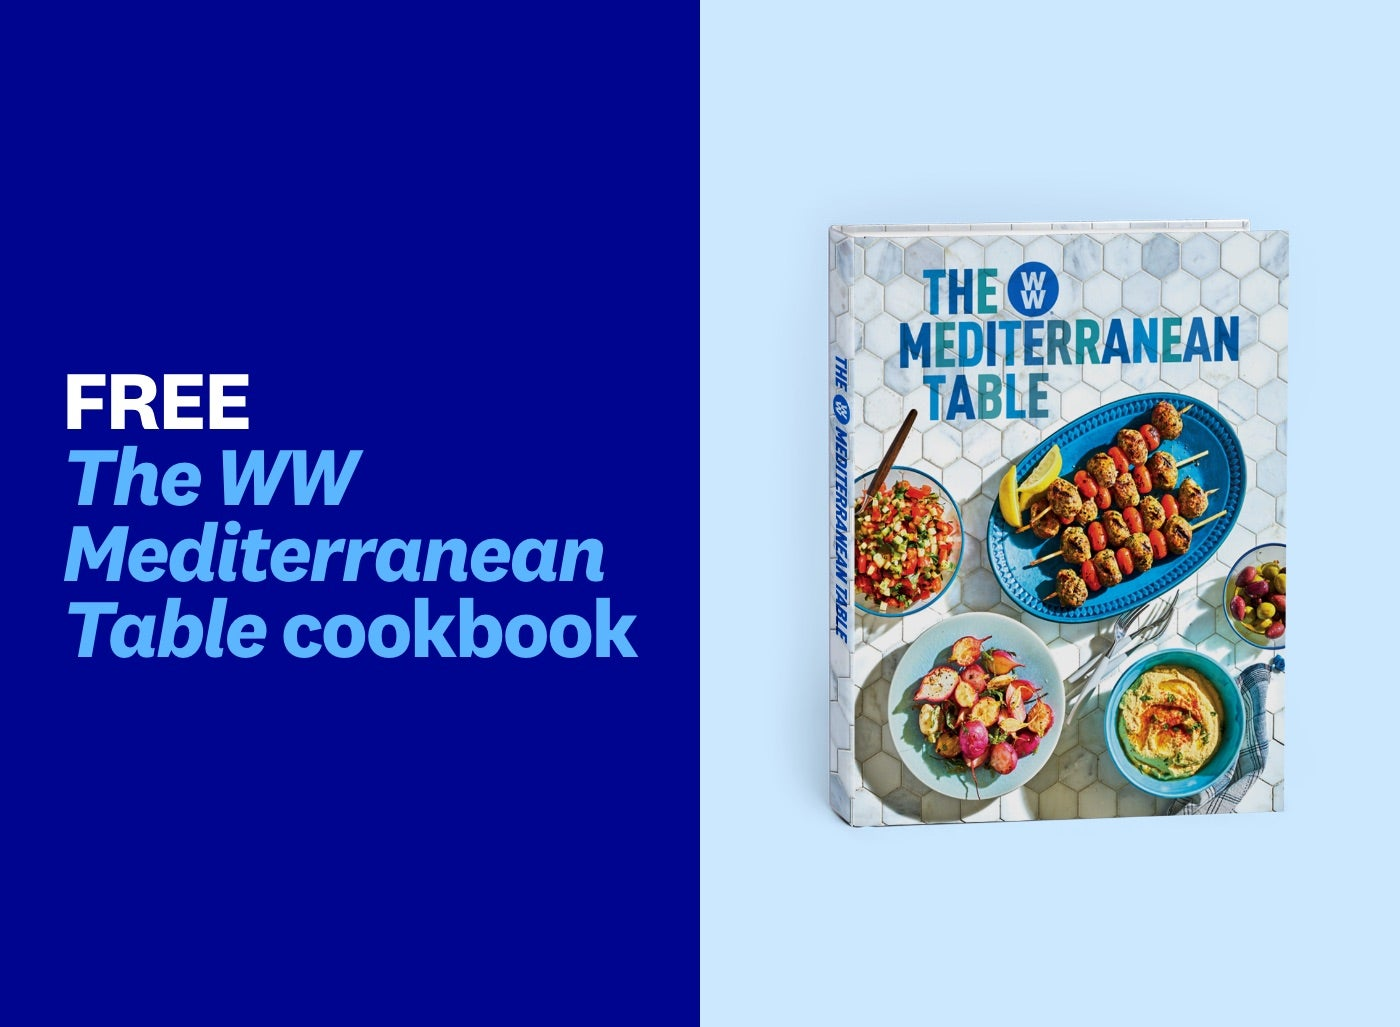 A cookbook is shown with potatoes and kebabs on the front of it.